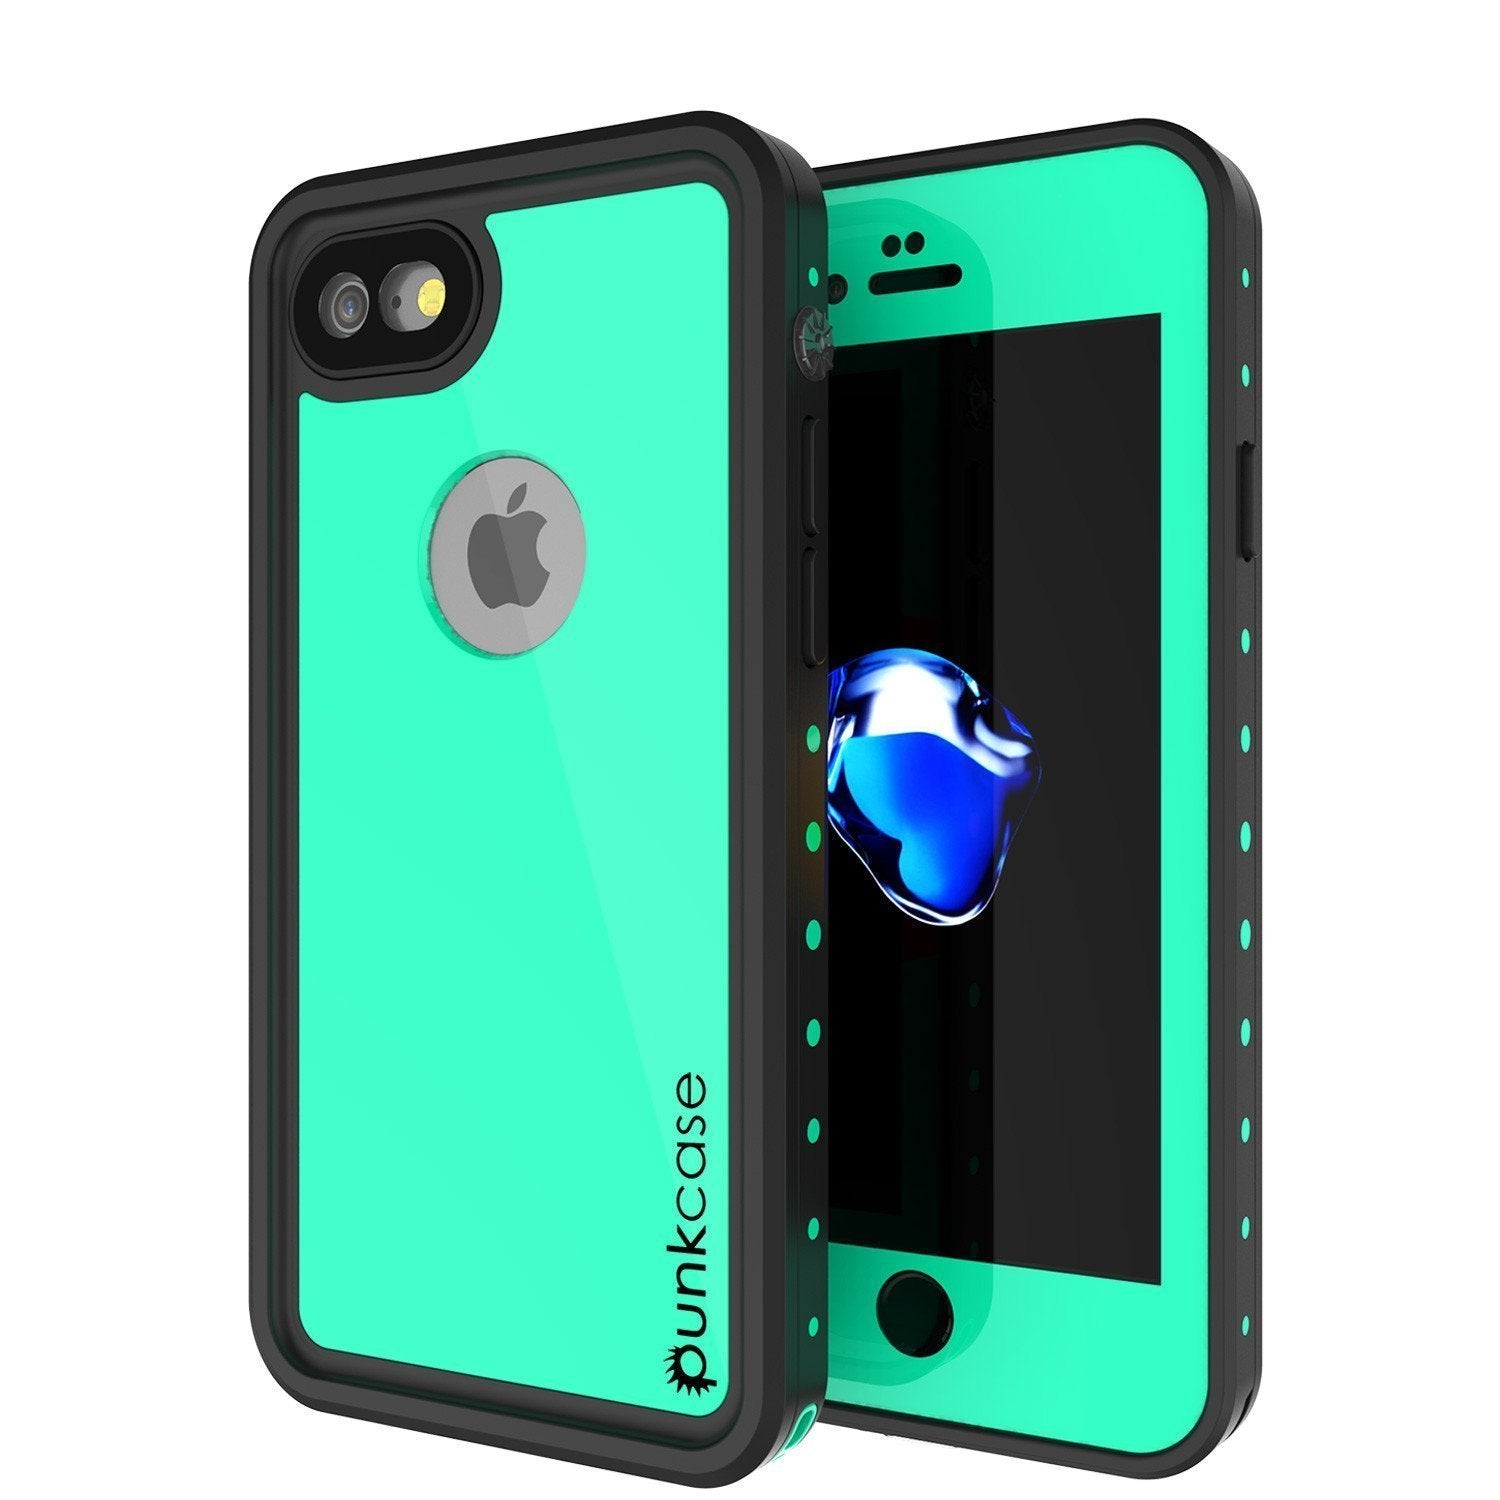 "iPhone SE (4.7"") Waterproof Case, Punkcase [Teal] [StudStar Series] [Slim Fit] [IP68 Certified]] [Dirtproof] [Snowproof]"